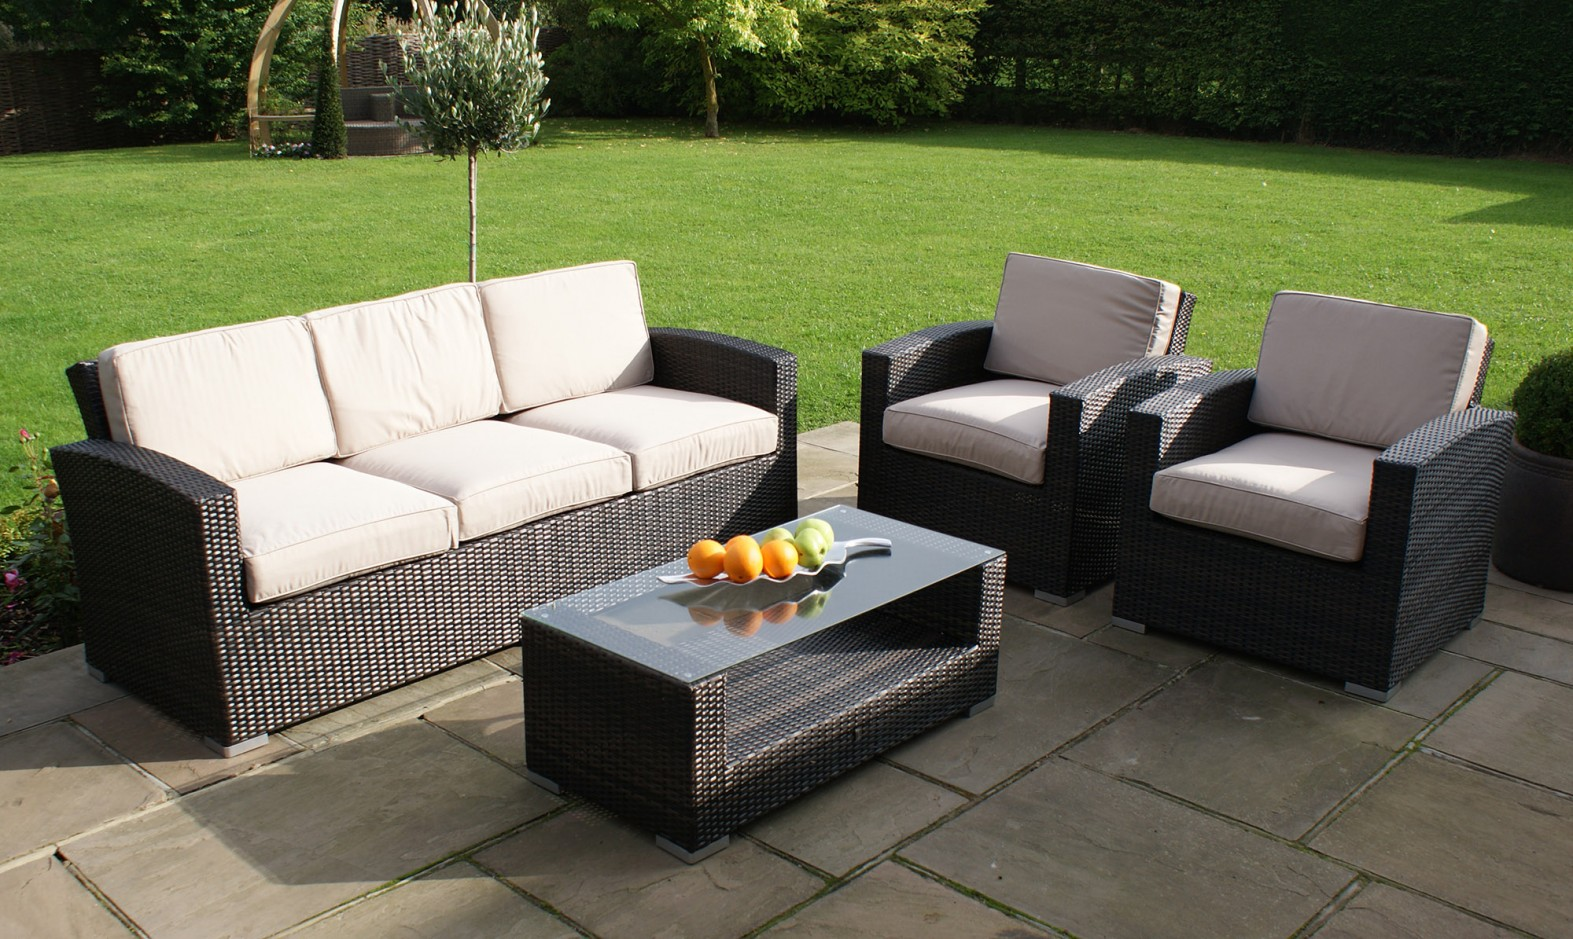 Garden Furniture Sale Home And Garden Furniture High Class Quality